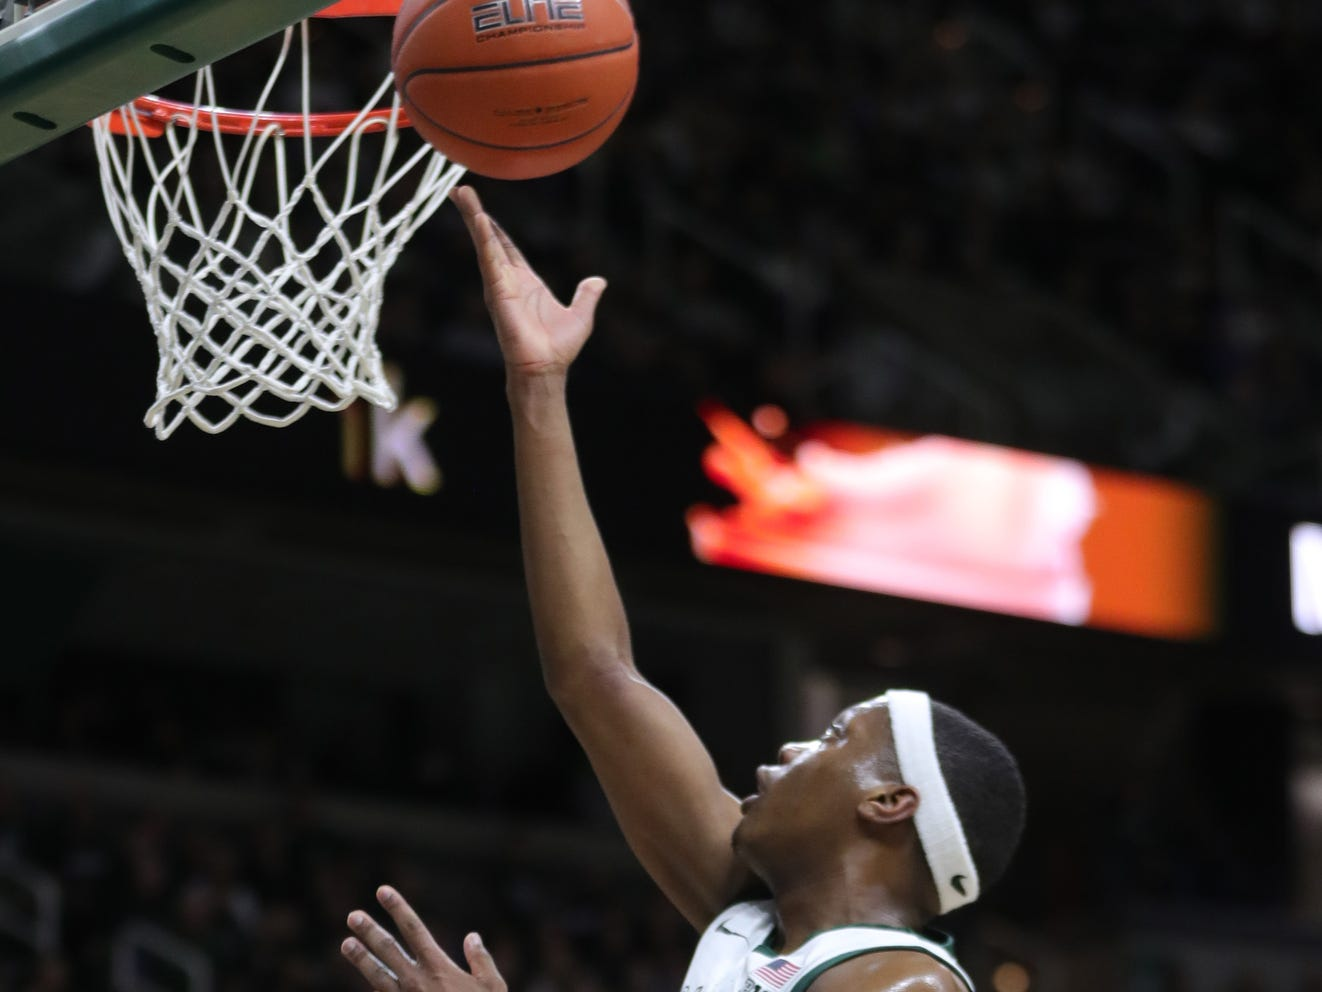 Michigan State guard Cassius Winston scores against Purdue guard Nojel Winston during first half action Tuesday, Jan. 8, 2019 at the Breslin Center in East Lansing, Mich.